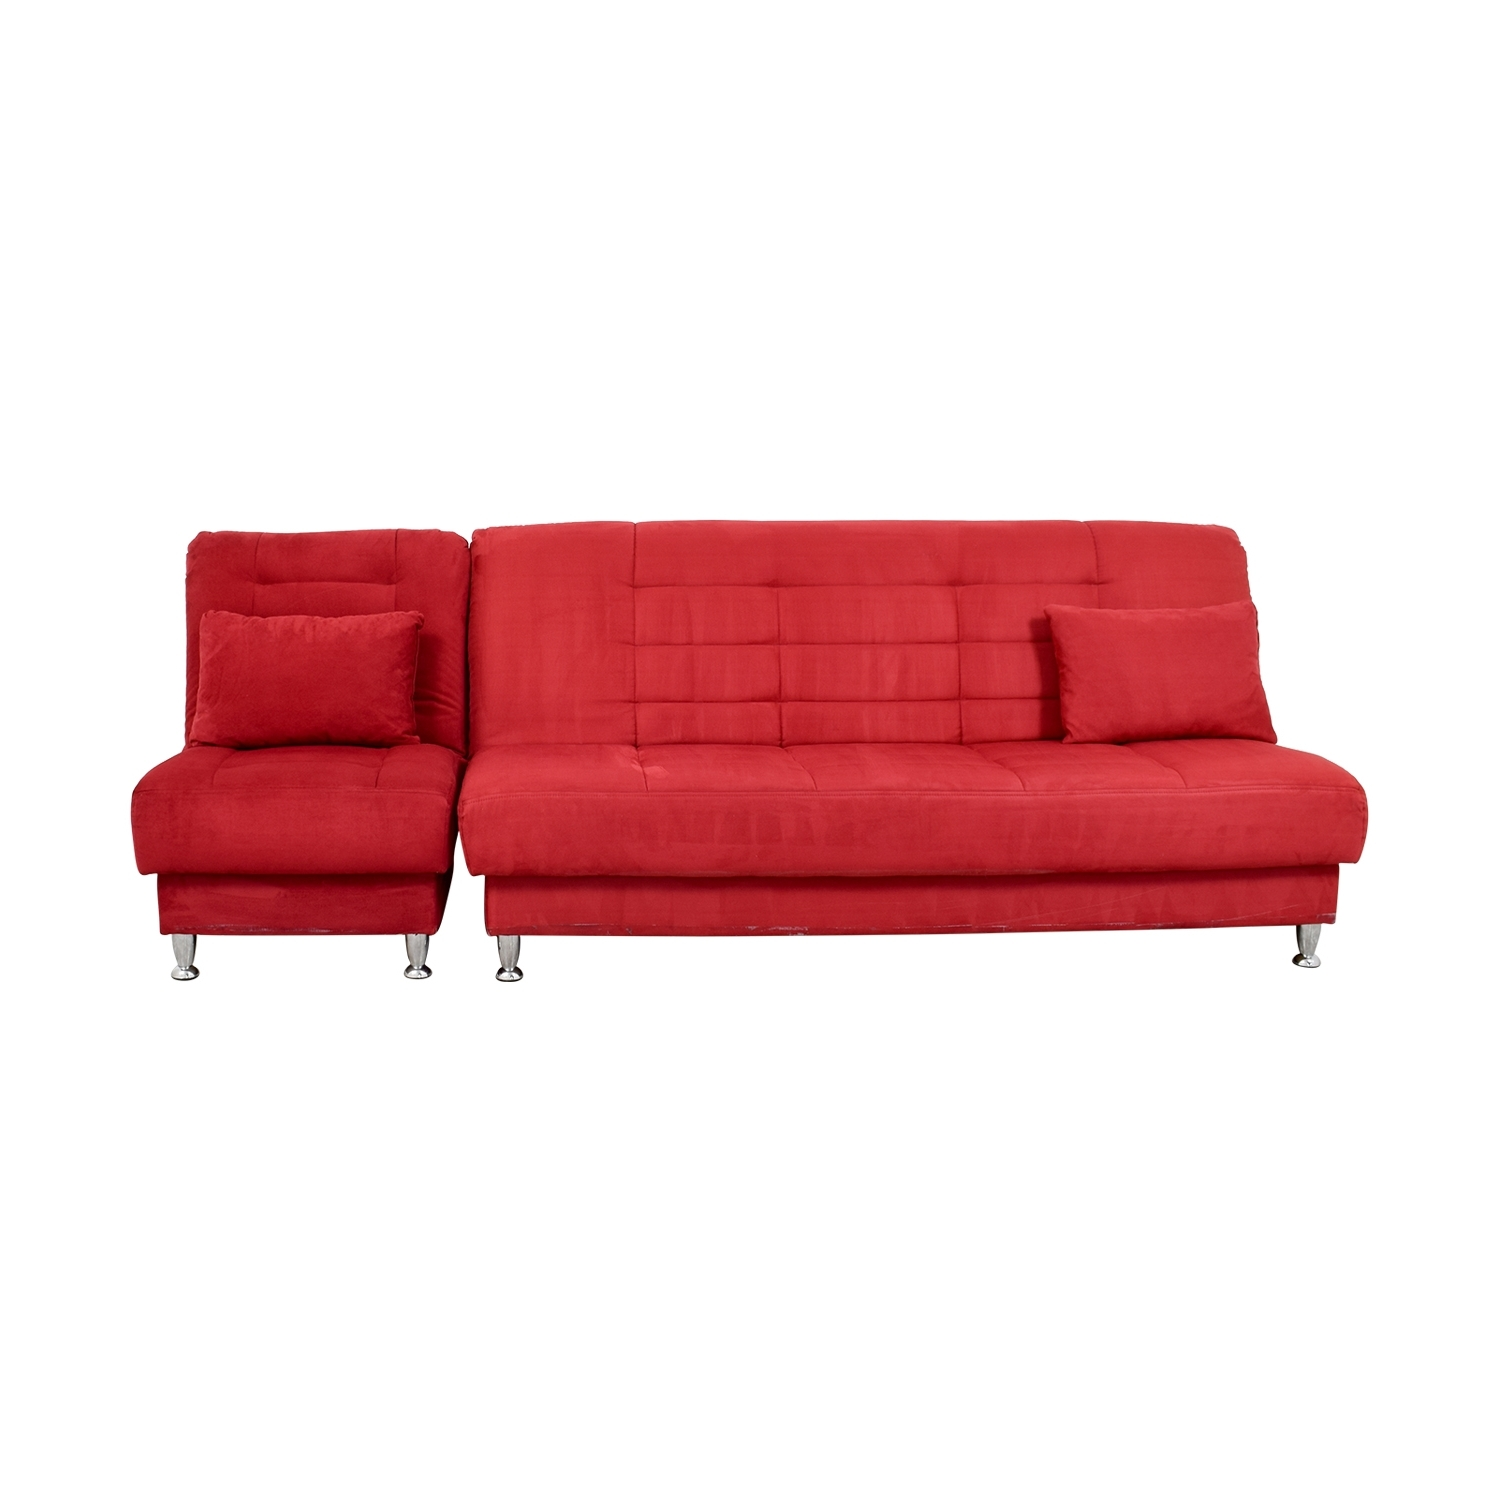 [%79% Off – Latitude Latitude Red Sofa Bed With Storage / Sofas With Best And Newest Chaises With Storage|Chaises With Storage With Famous 79% Off – Latitude Latitude Red Sofa Bed With Storage / Sofas|Well Liked Chaises With Storage With Regard To 79% Off – Latitude Latitude Red Sofa Bed With Storage / Sofas|Well Known 79% Off – Latitude Latitude Red Sofa Bed With Storage / Sofas Intended For Chaises With Storage%] (View 13 of 15)